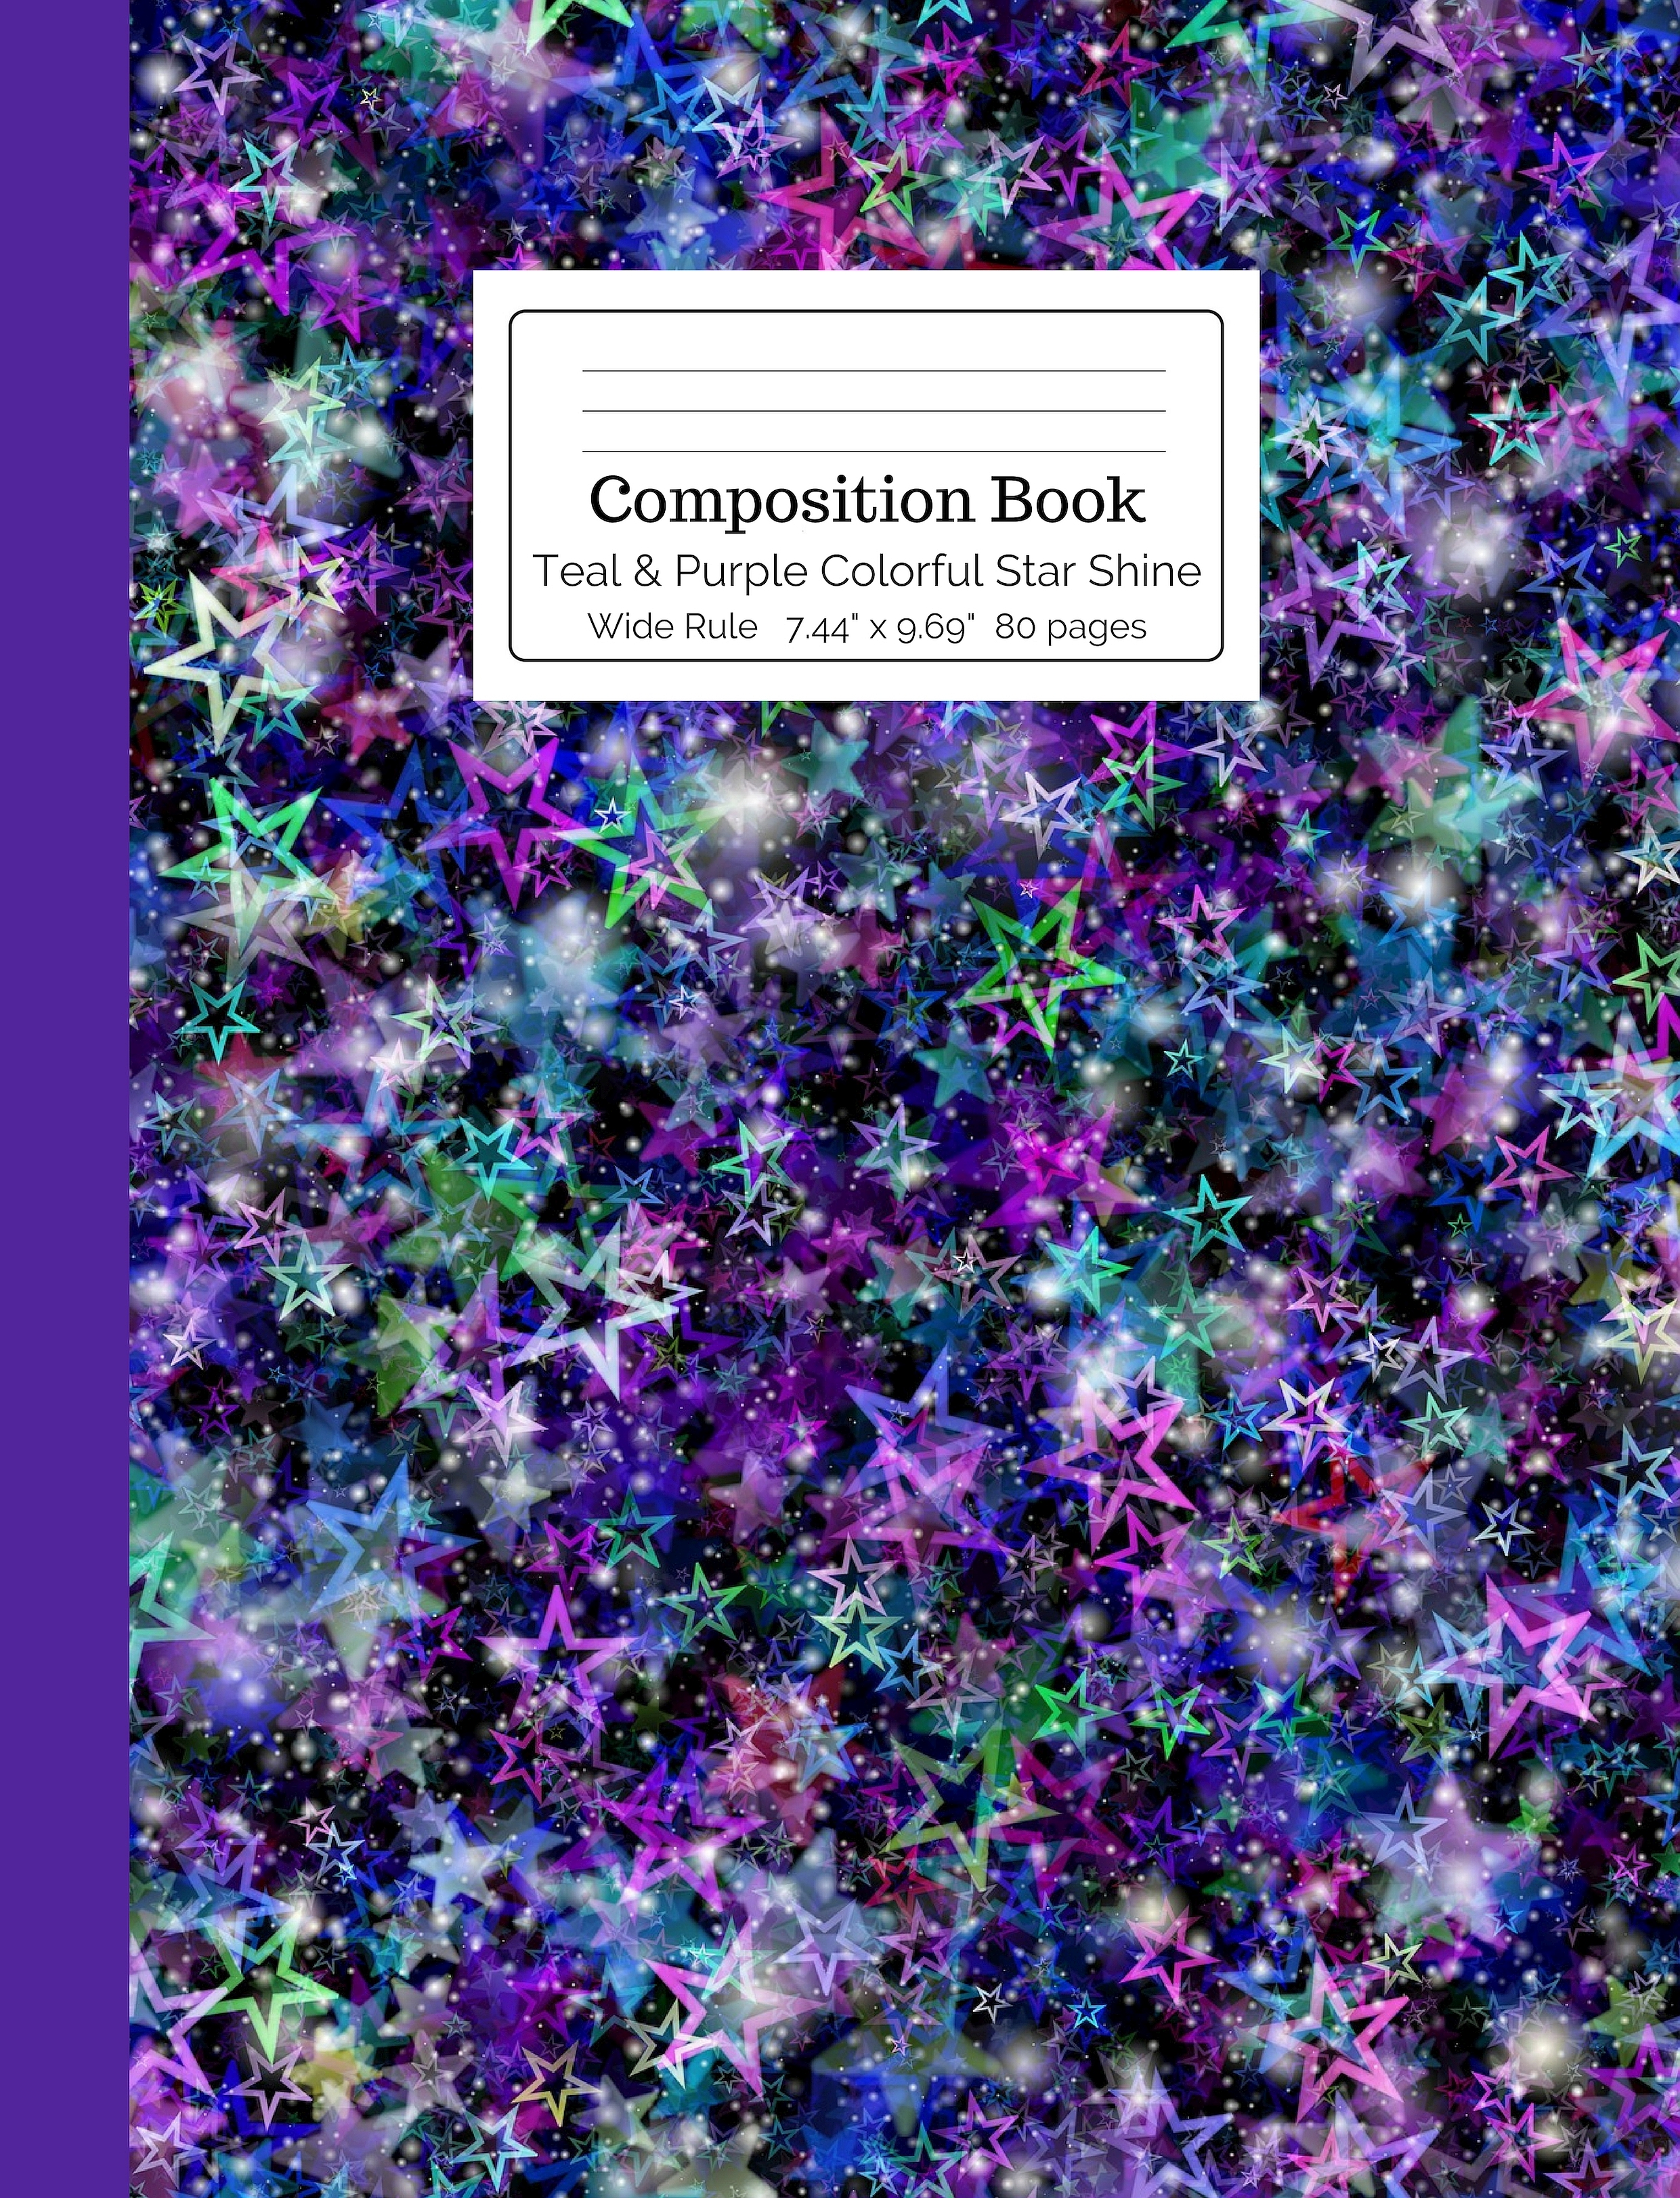 Teal & Purple Colorful Star Shine Composition